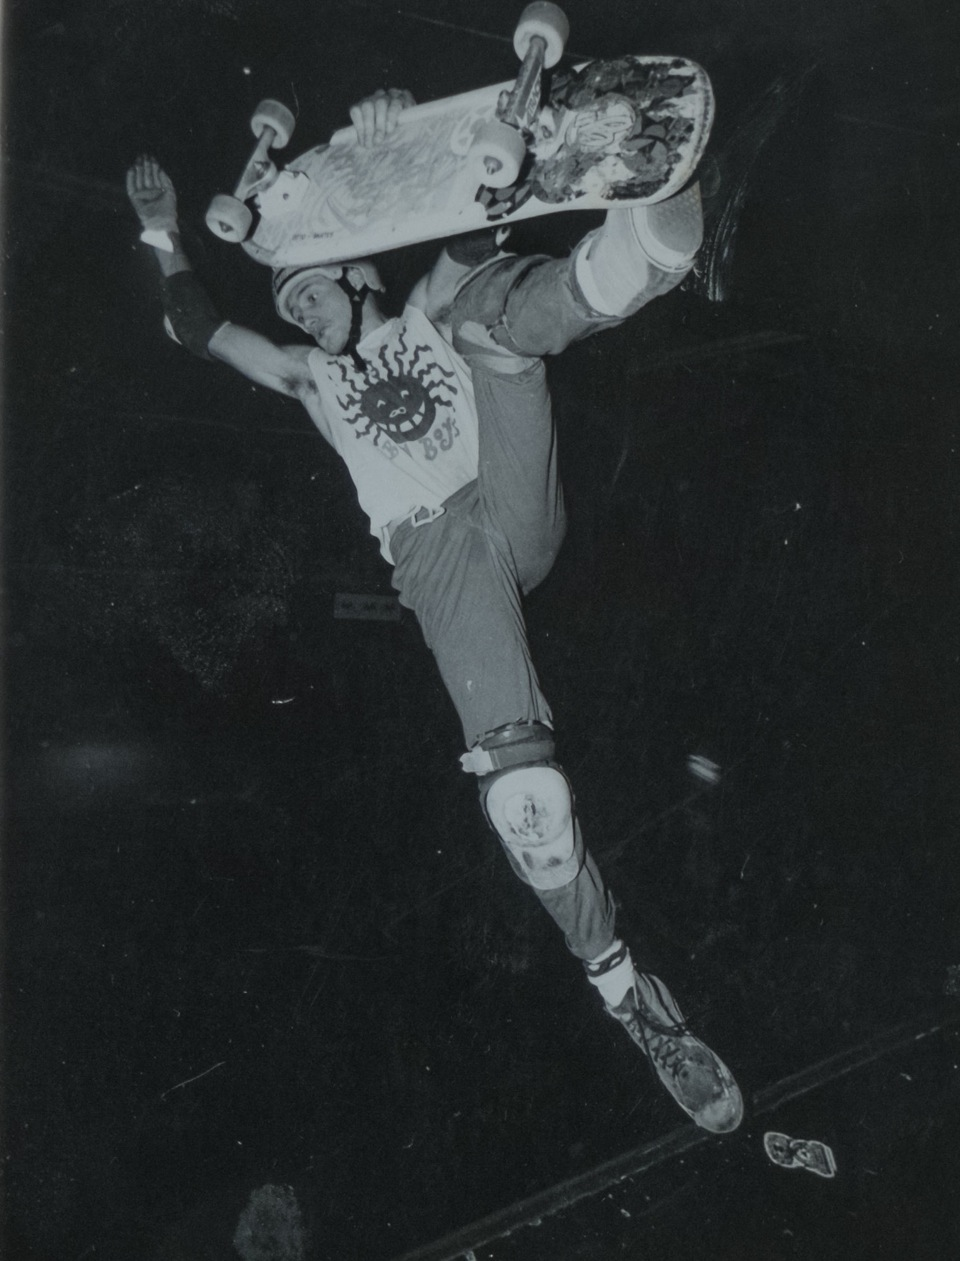 At one of the Tropica Winter contests around 86, this was kind of the only indoor skatepark back then, so everybody came for that. Riding a Florian Böhm deck and diy Big Boys shirt. Photo by Ralf Schmitt